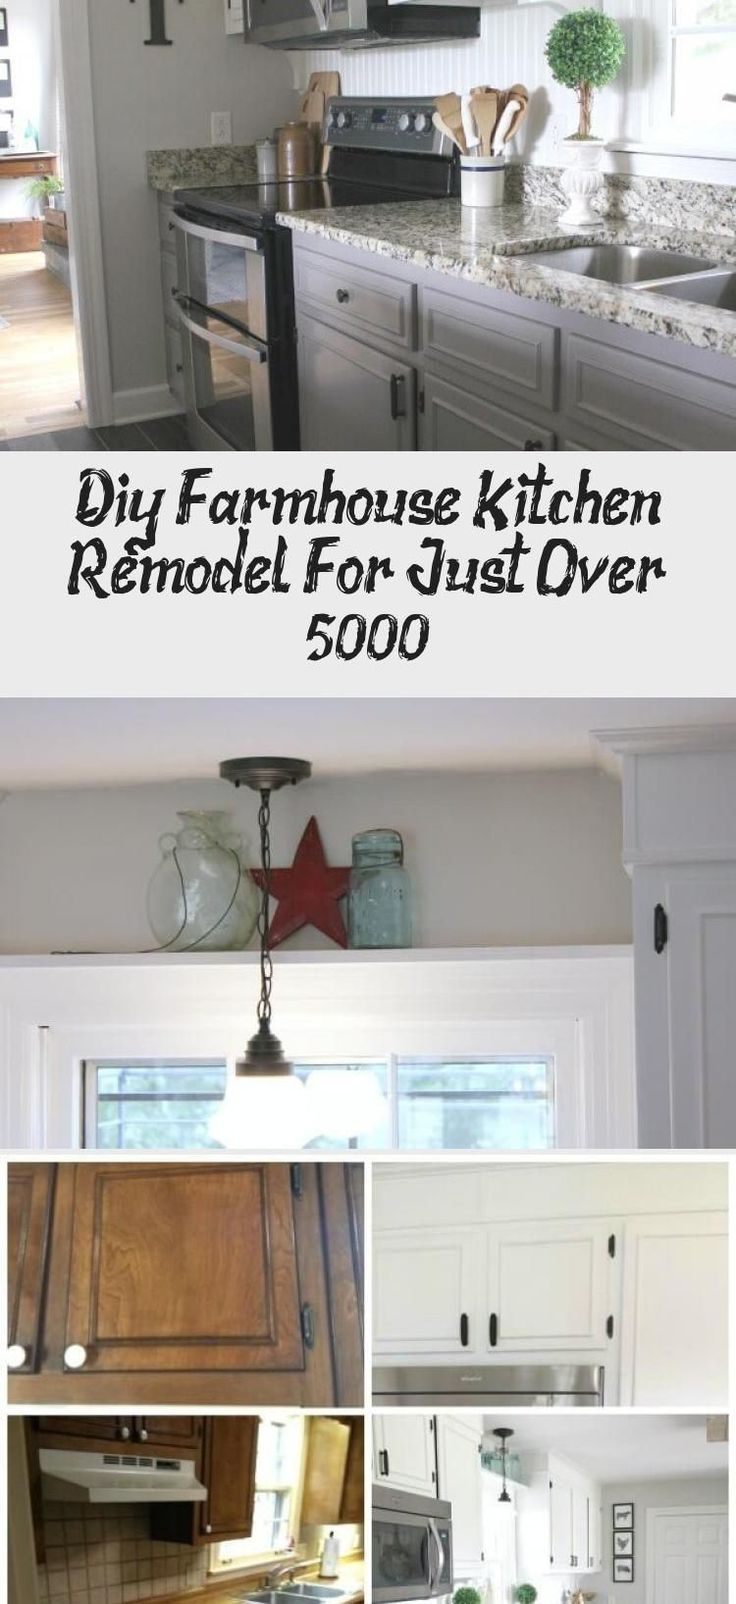 diy farmhouse kitchen remodel for just over 5000 kitchen decor diy farmhouse kitchen remod on kitchen remodel under 5000 id=59975